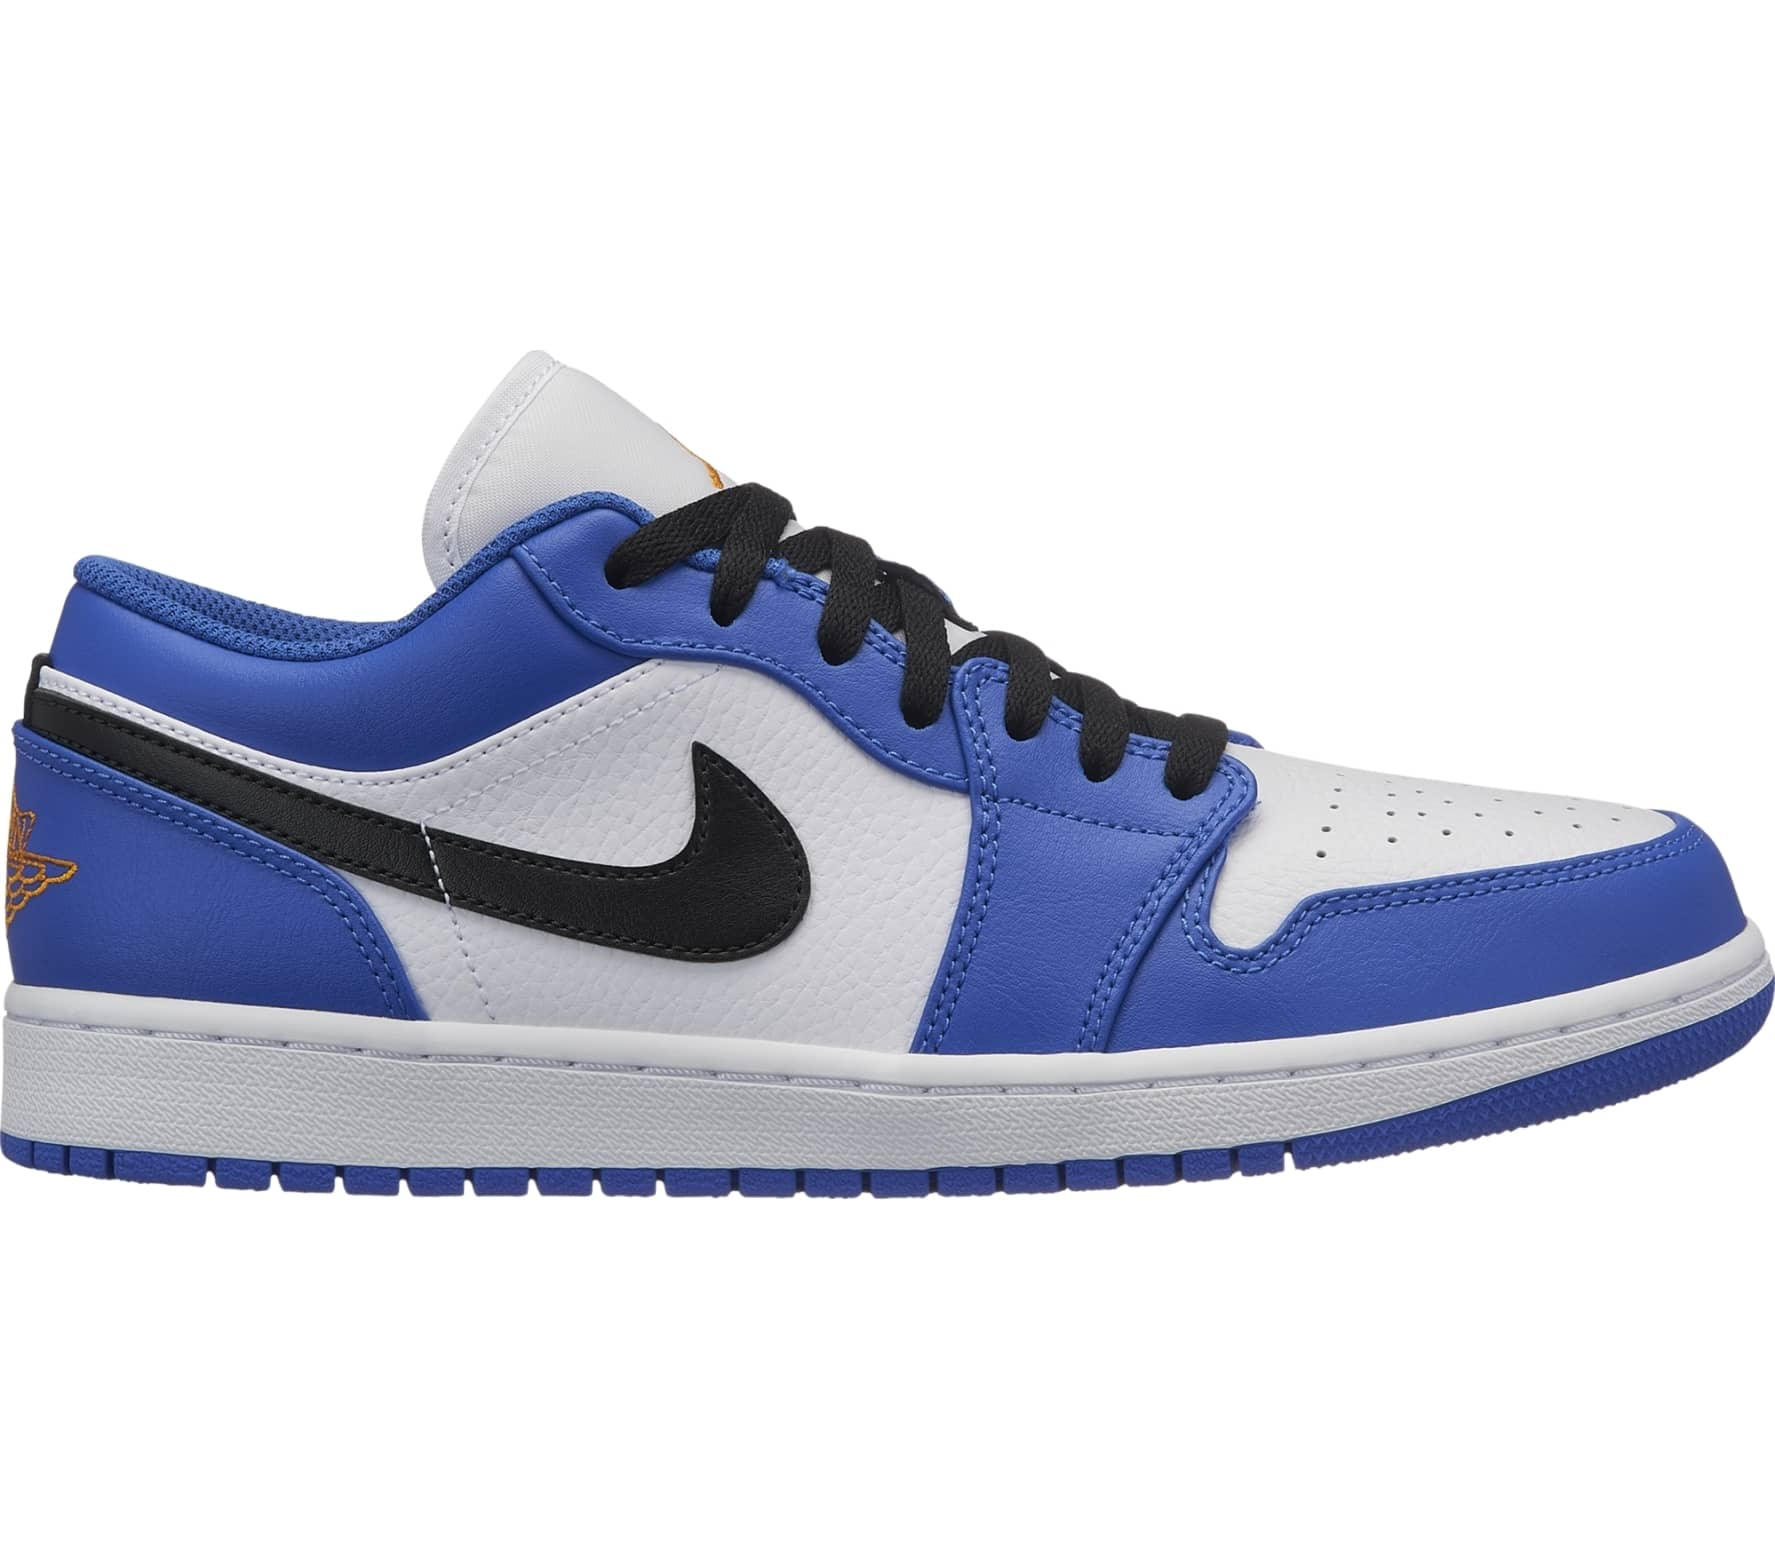 sports shoes 01d32 ba569 ... inexpensive jordan air jordan 1 low herren sneaker weiß blau 19743 d96e4